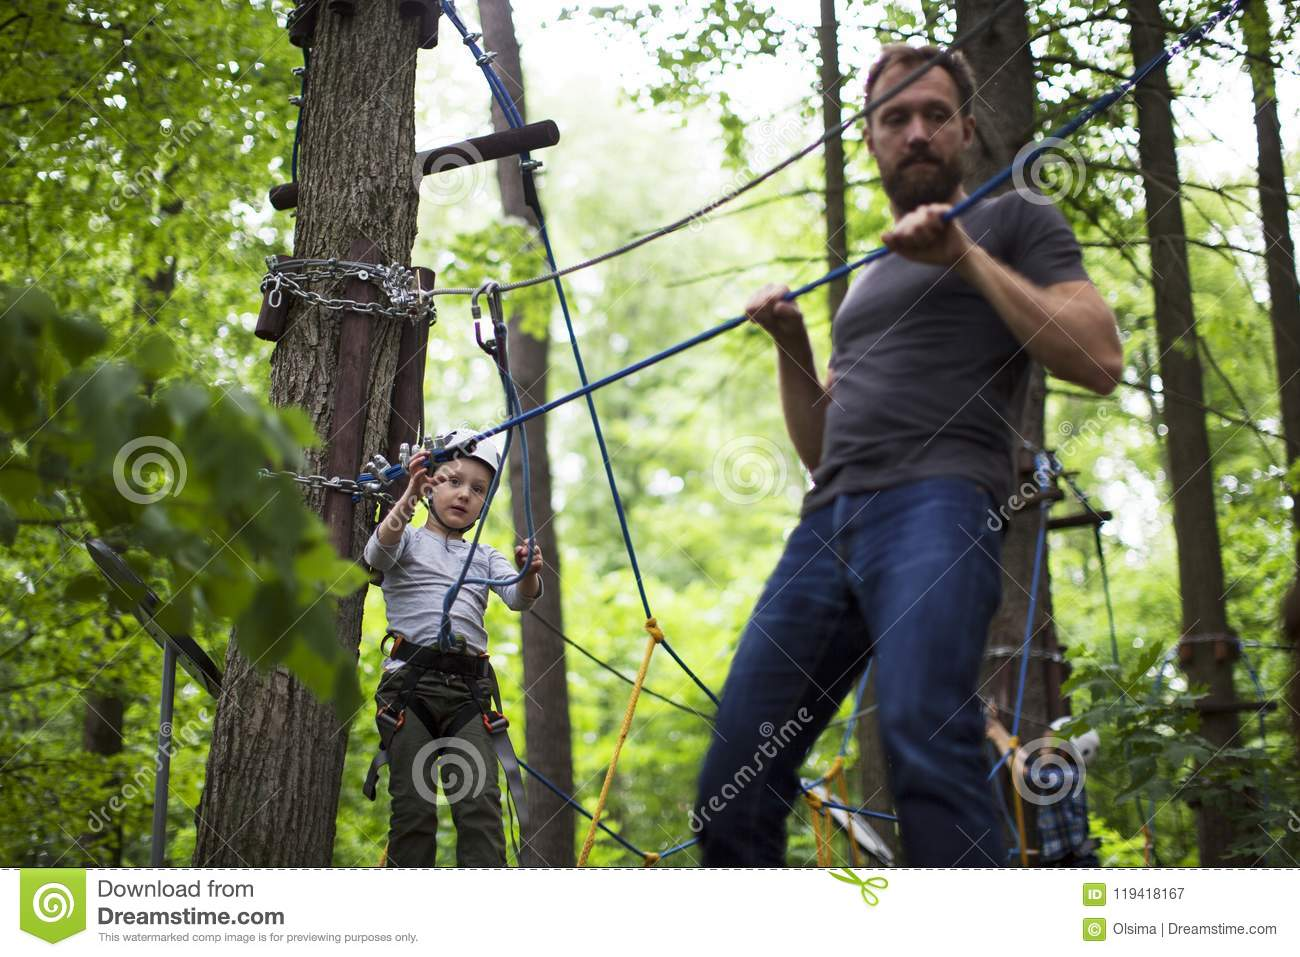 Boy Enjoys Climbing In The Ropes Course Adventure Smiling Child Space Wire Harness Engaged High Park Copy For Your Text